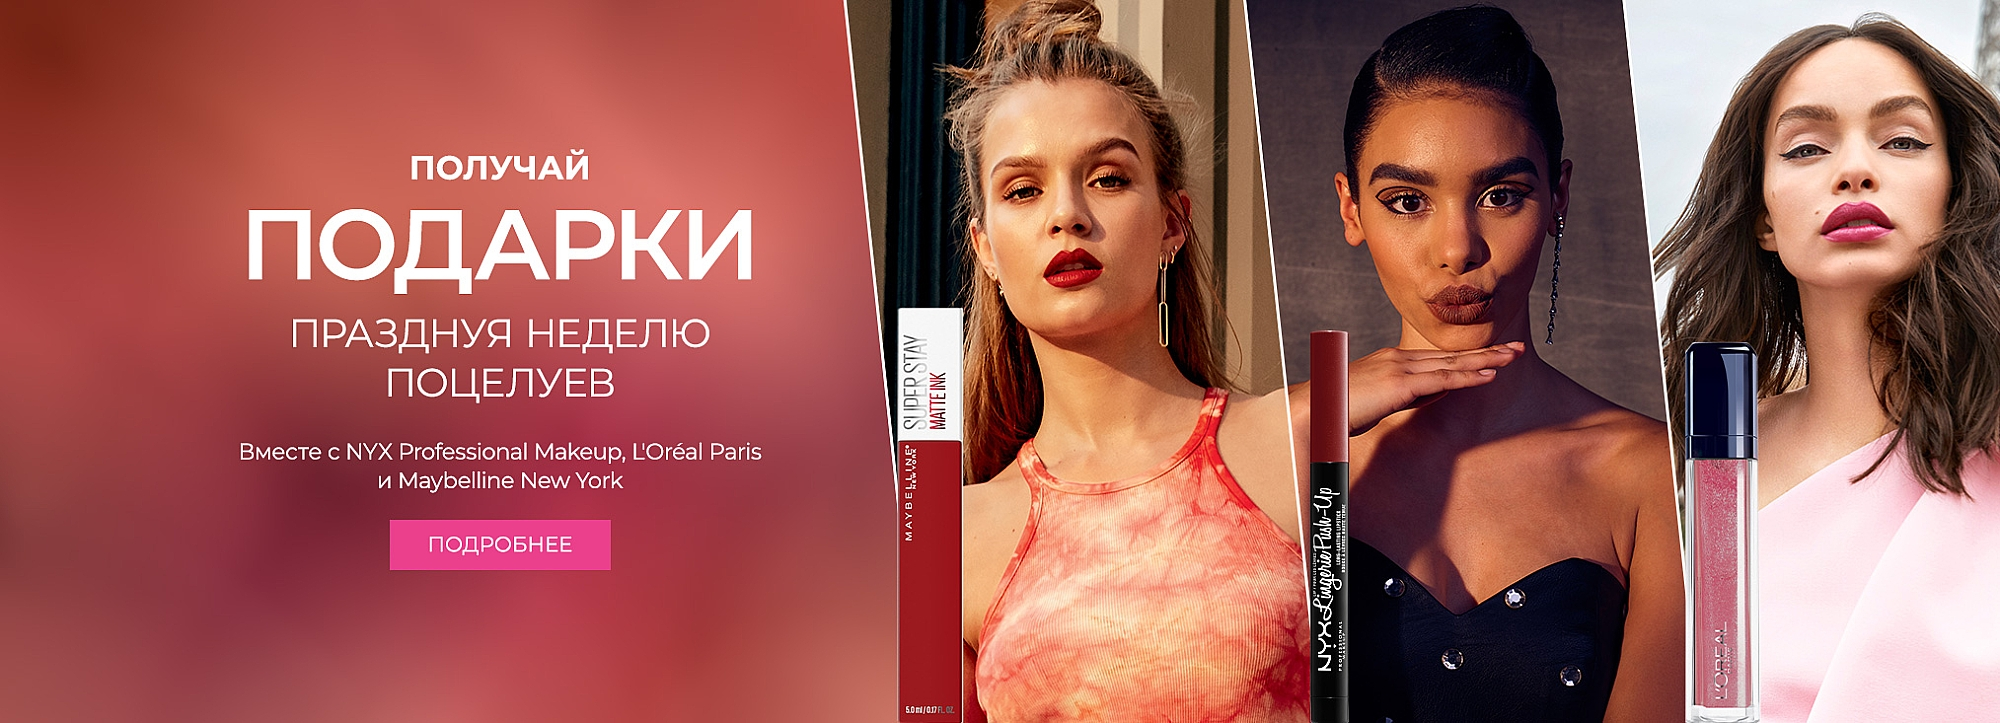 NYX Professional Makeup, L'Oreal Paris, Maybelline New York_actions